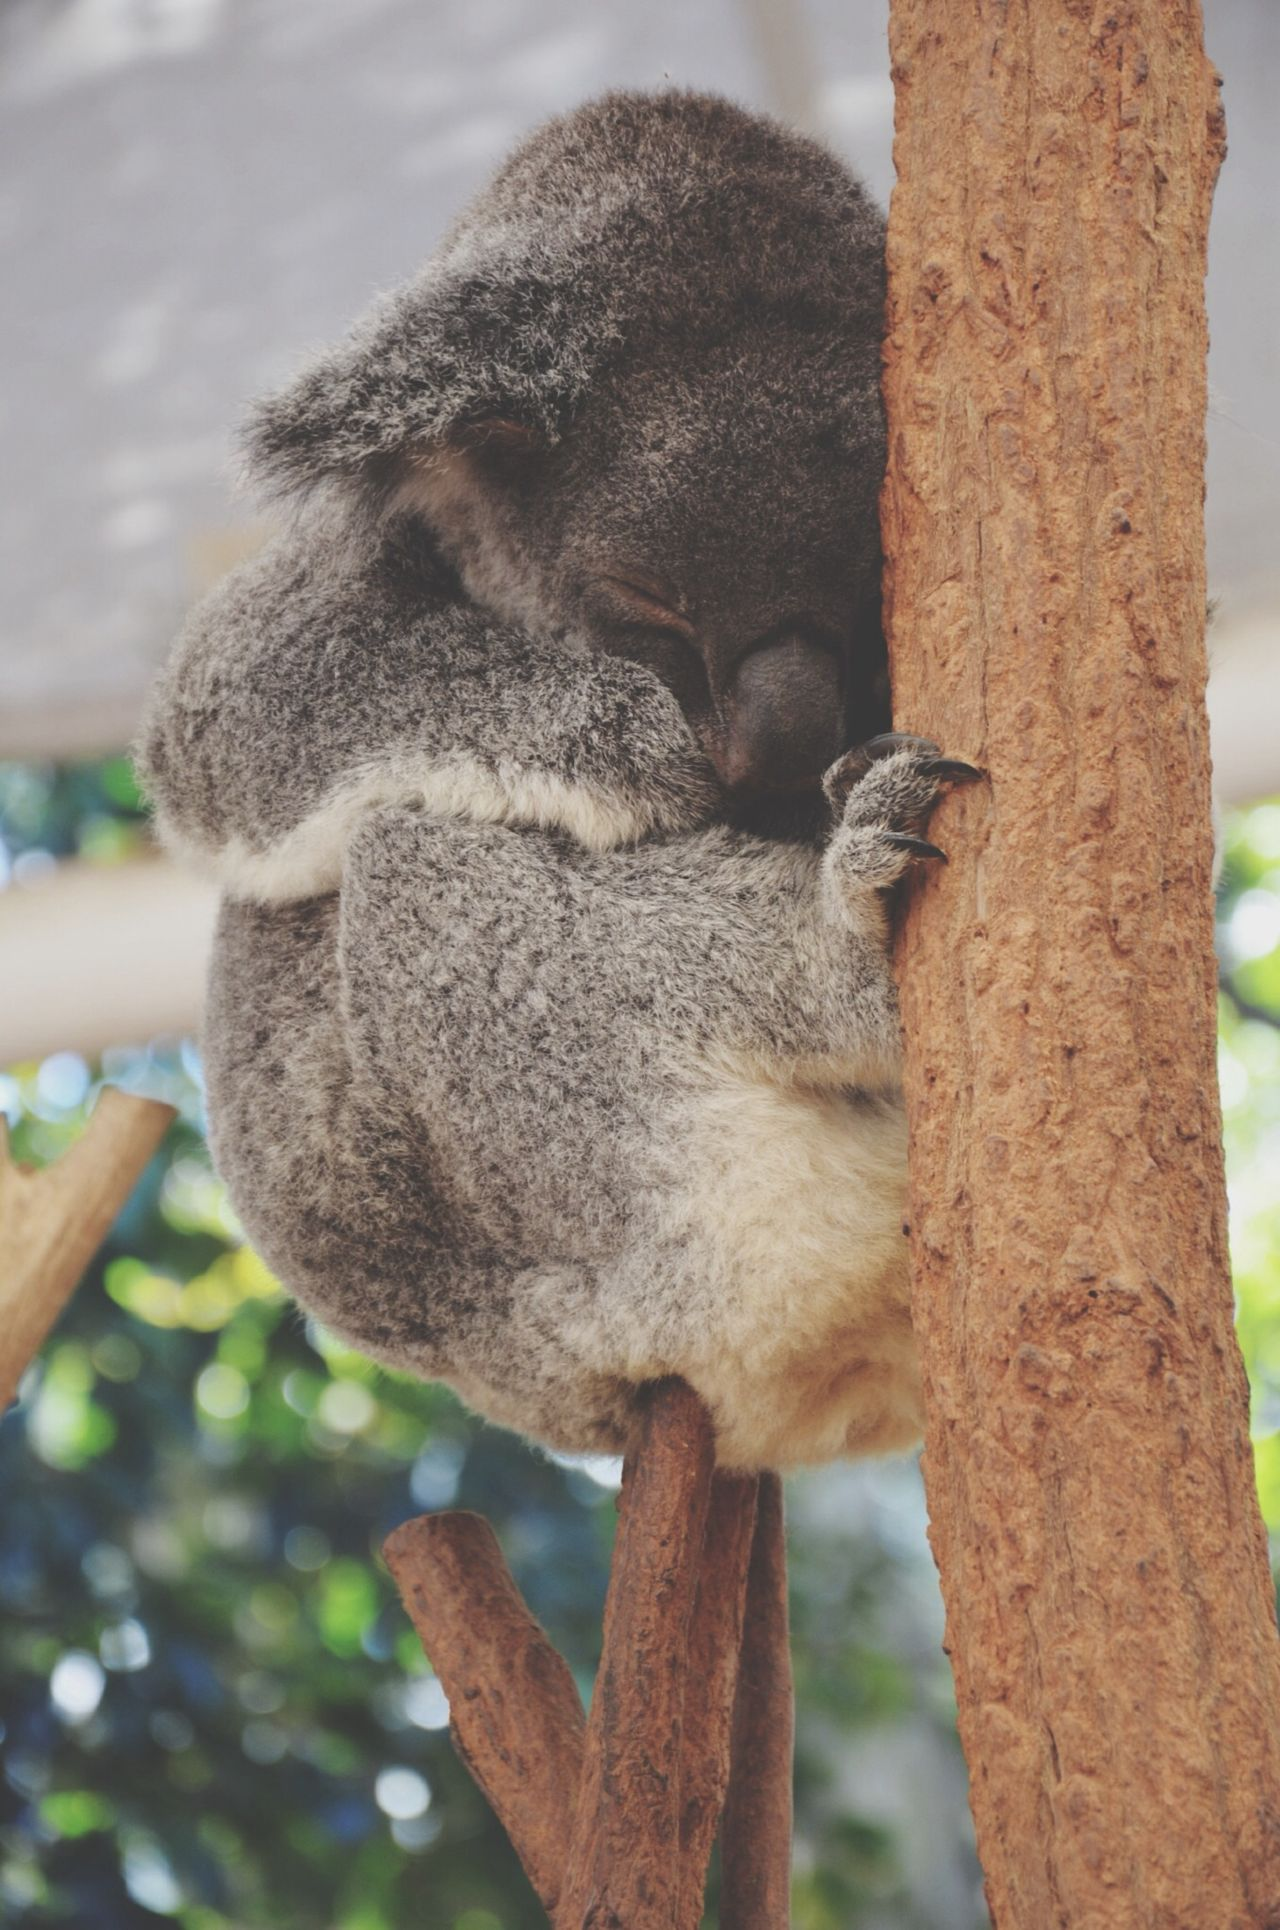 Koala Australia Cute EyeEm Best Shots